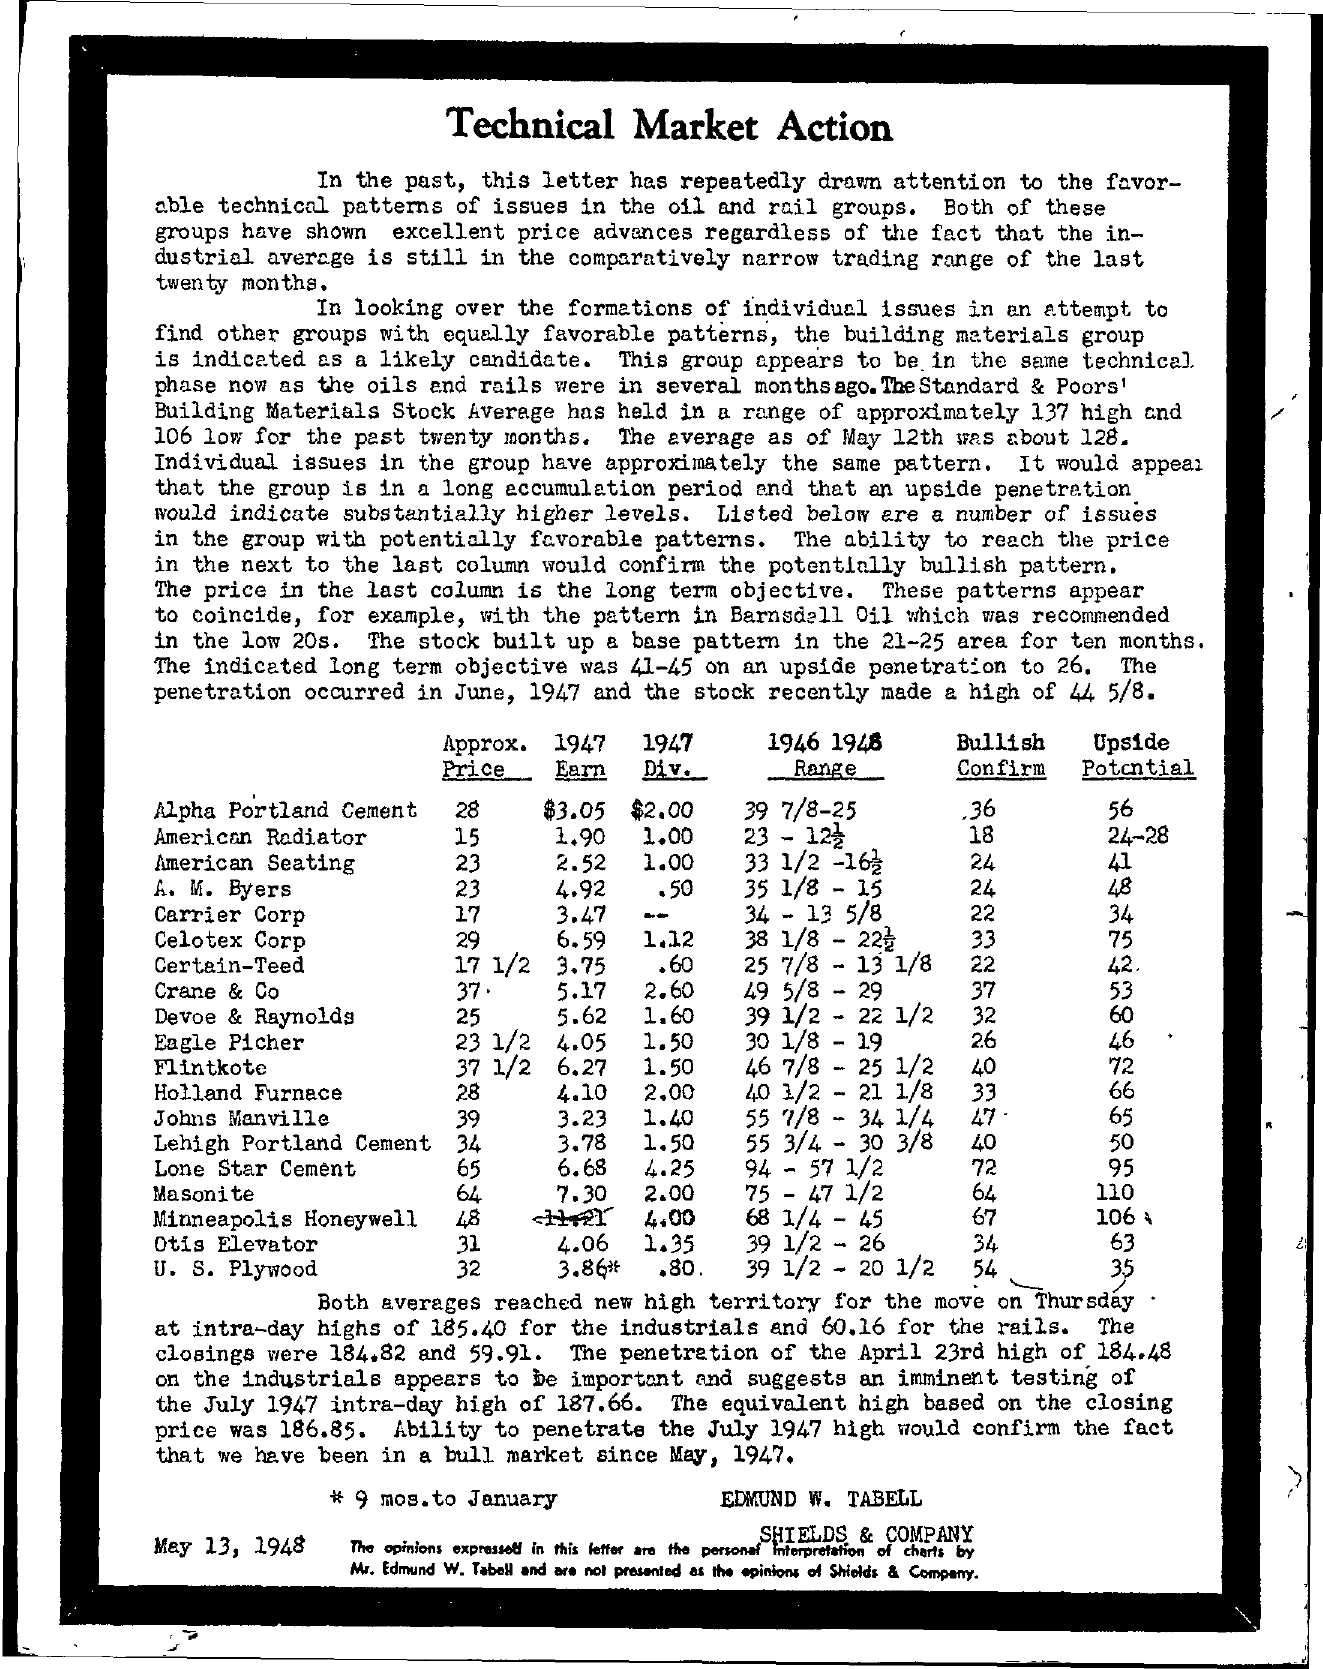 Tabell's Market Letter - May 13, 1948